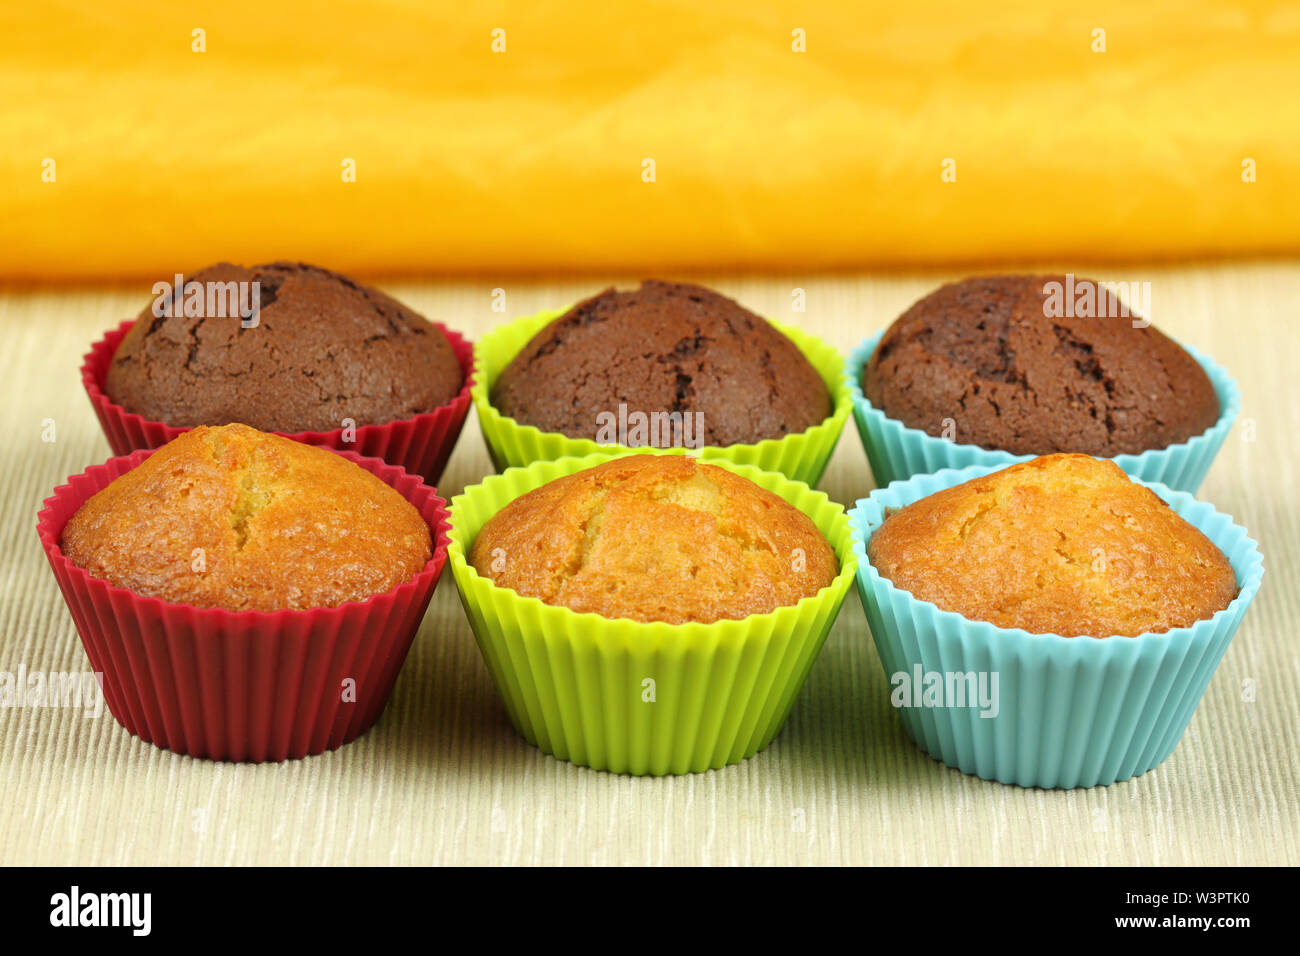 delicious cupcakes in colorful molds - black and white cakes - Stock Image